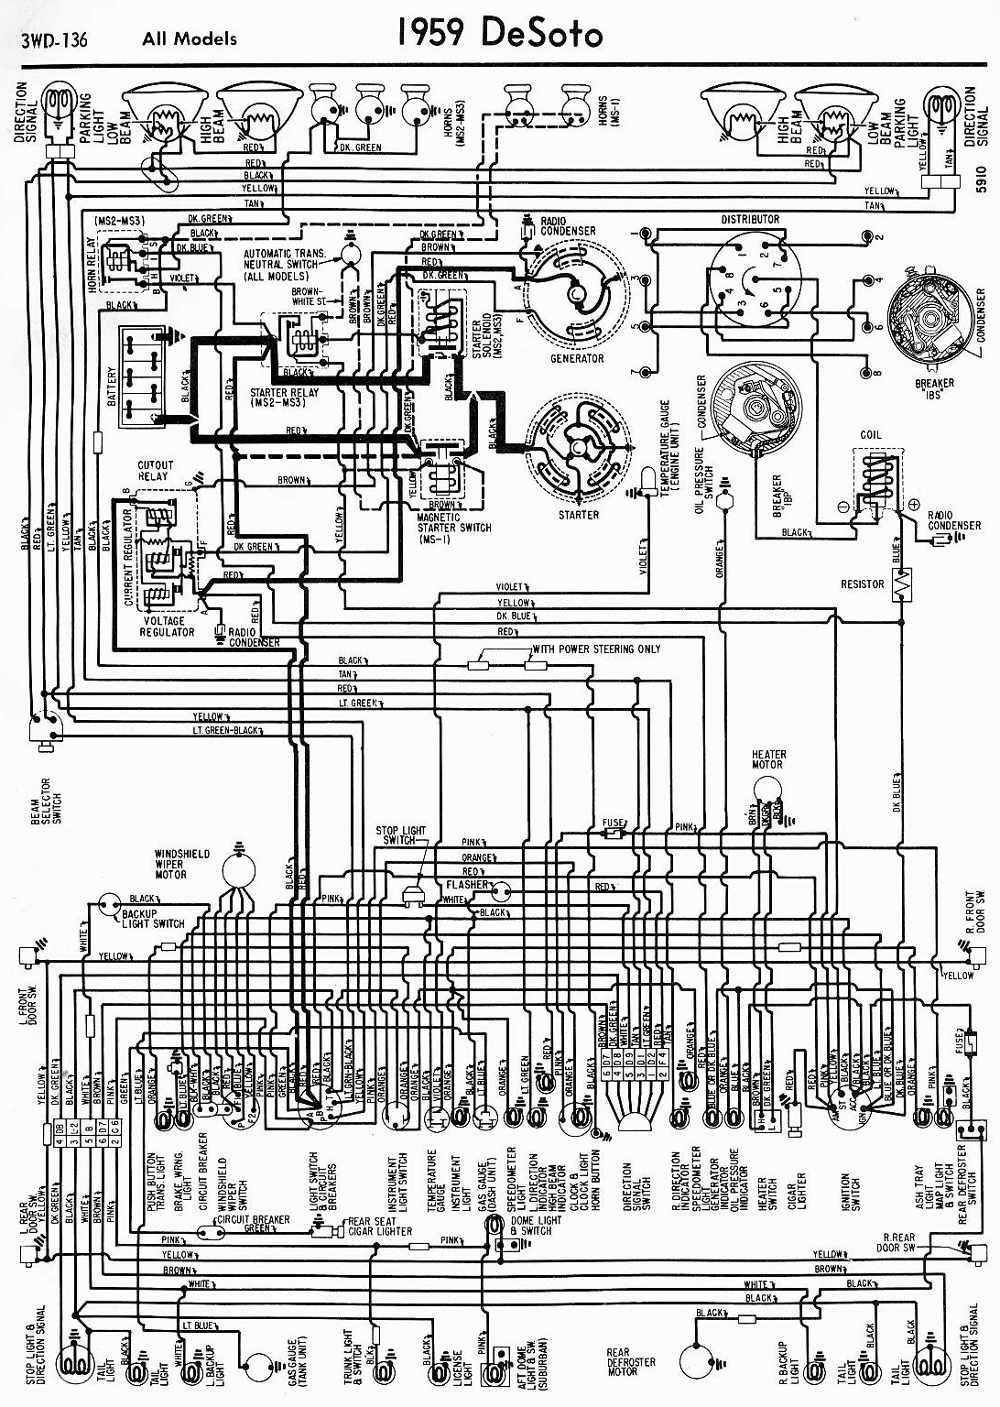 De soto car manuals wiring diagrams pdf fault codes